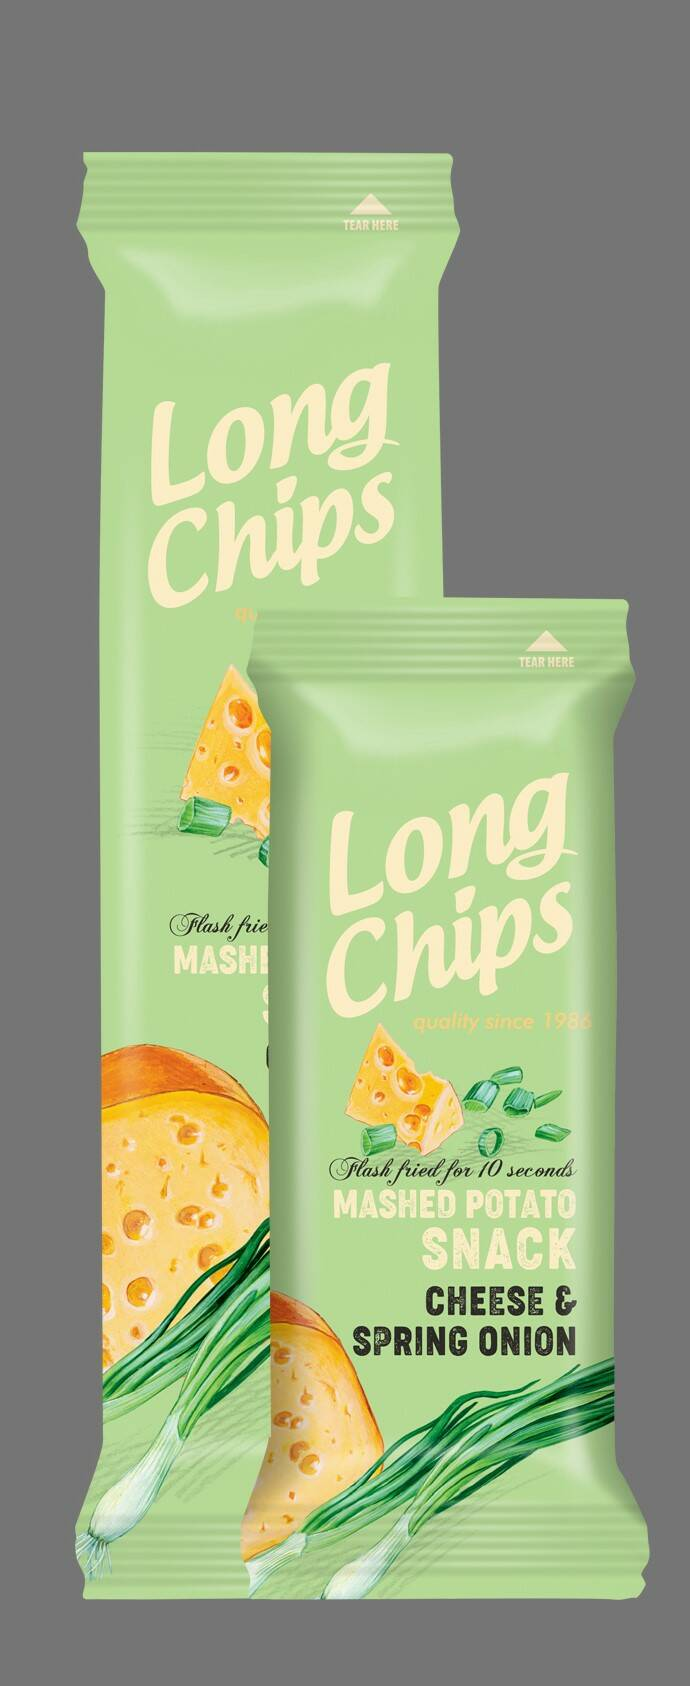 Long potato chips with cheese and spring onion, pre order